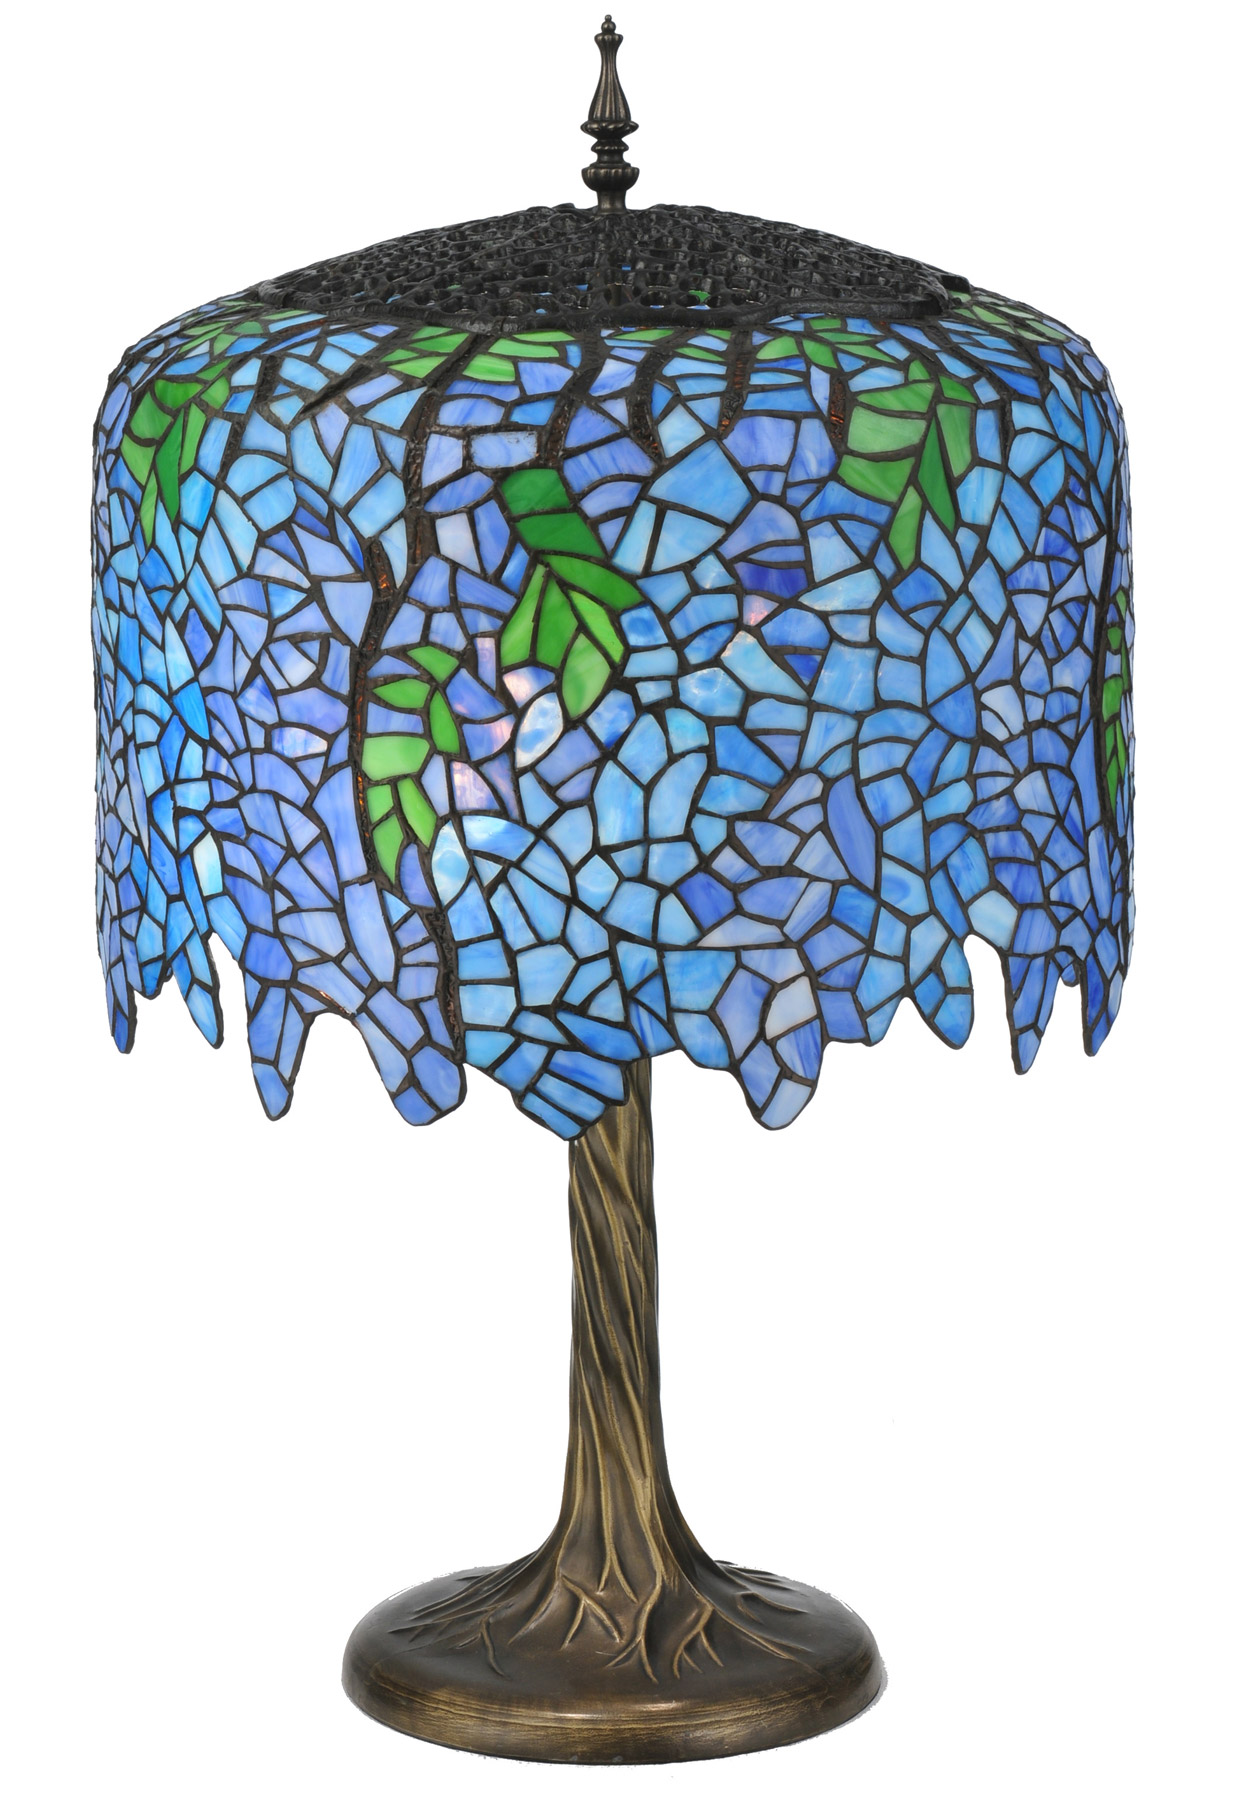 Meyda 118689 Wisteria Table Lamp